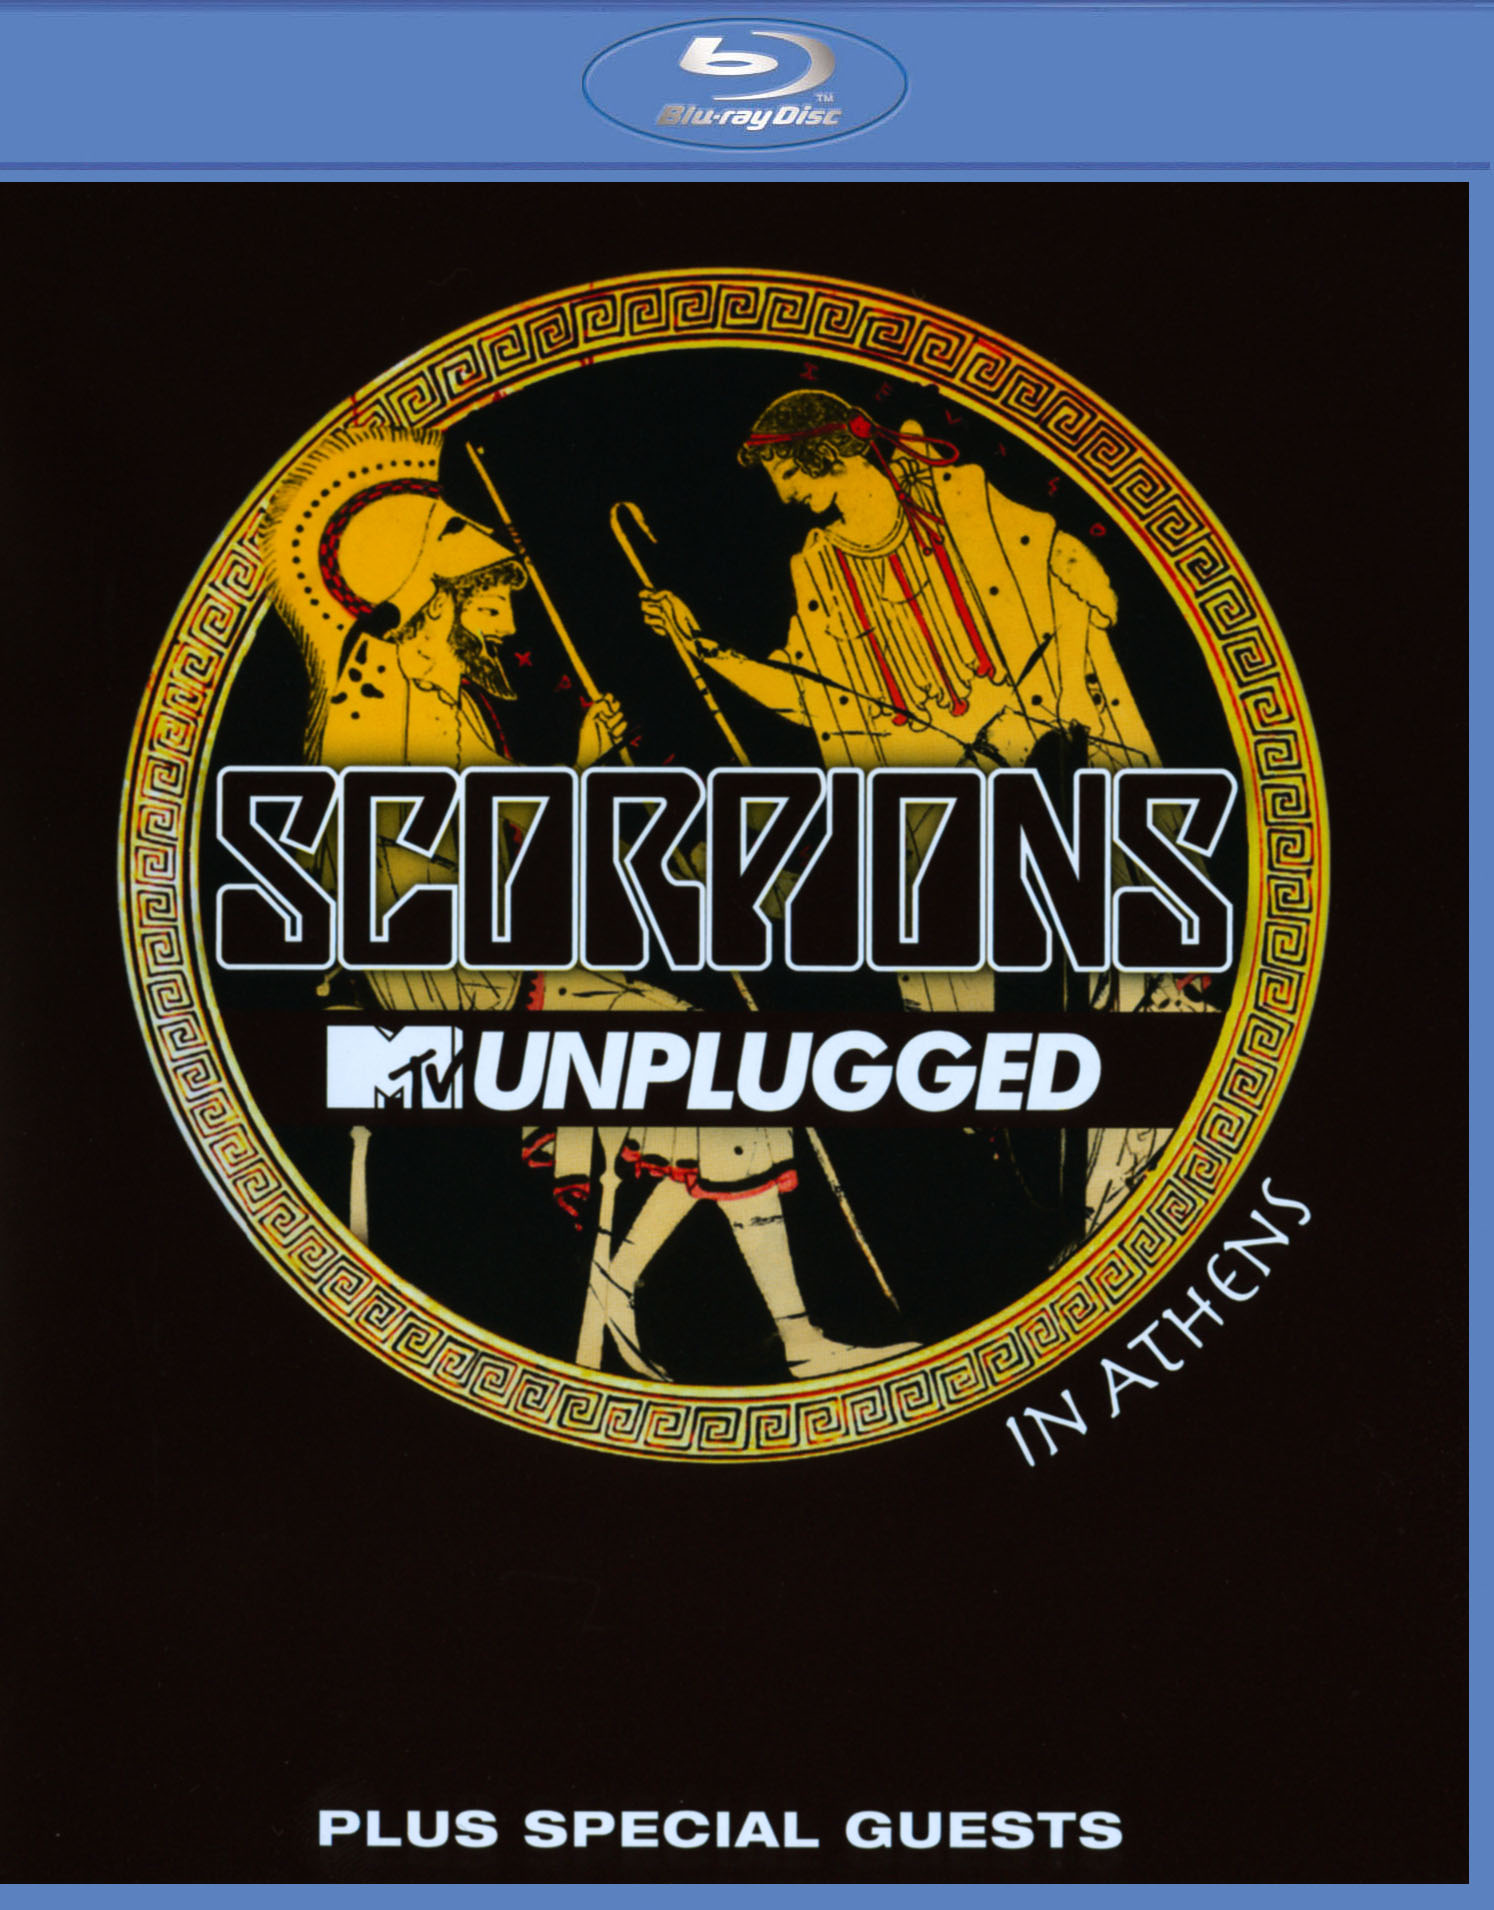 MTV Unplugged: Scorpions in Athens